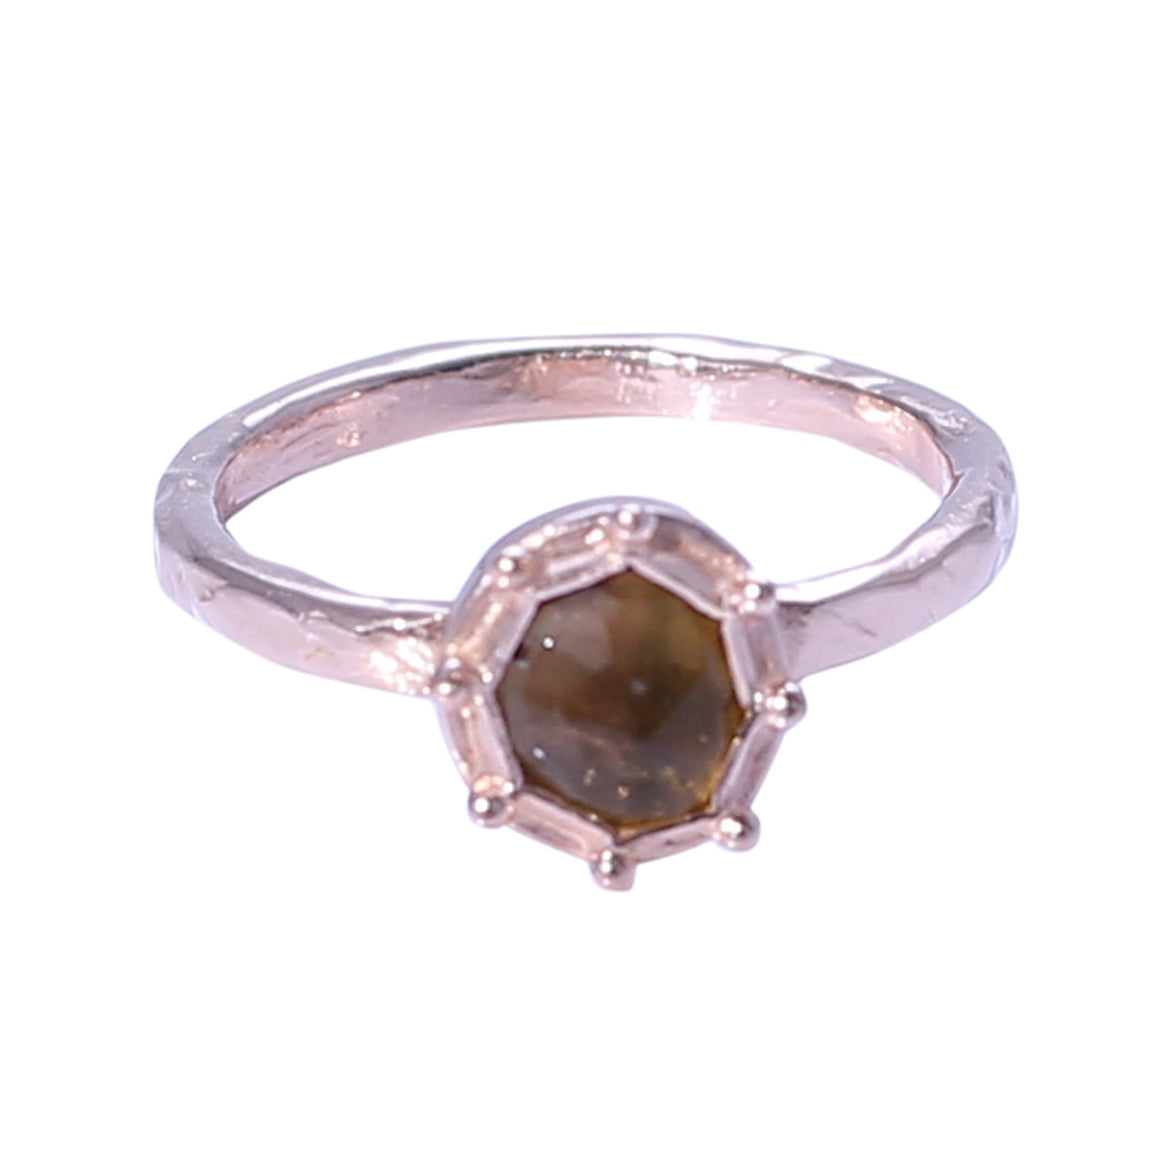 Sabyavi Ring Yellow Tourmaline Bezel Set Ring Sterling Silver